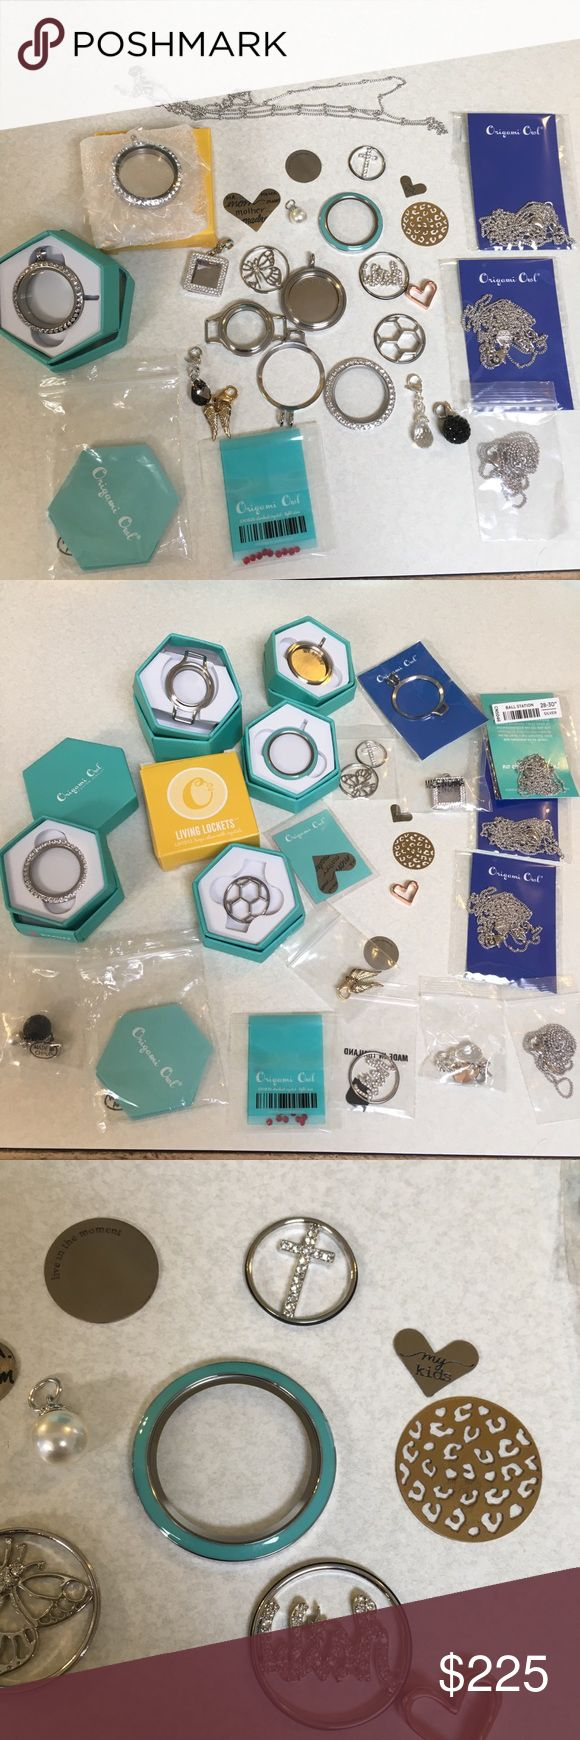 Origami Owl Lot chains lockets plates Crystal new Most of the pieces shown are new, some display, all are authentic. Pieces may not be in the right packing. One piece is used for sure open locket w/ my story plate which I secured in w/ tape. 4 chains, 7 plate inserts, 5 dangle charms , 1 pack red stardust crystals,1 charm divider -catcher,1 rose gold heart slide, 1 photo locket charm,1 dangle holder backing, 1 teal face,1 back of bracelet locket, 1 swarovski clear face, 2 complete large…